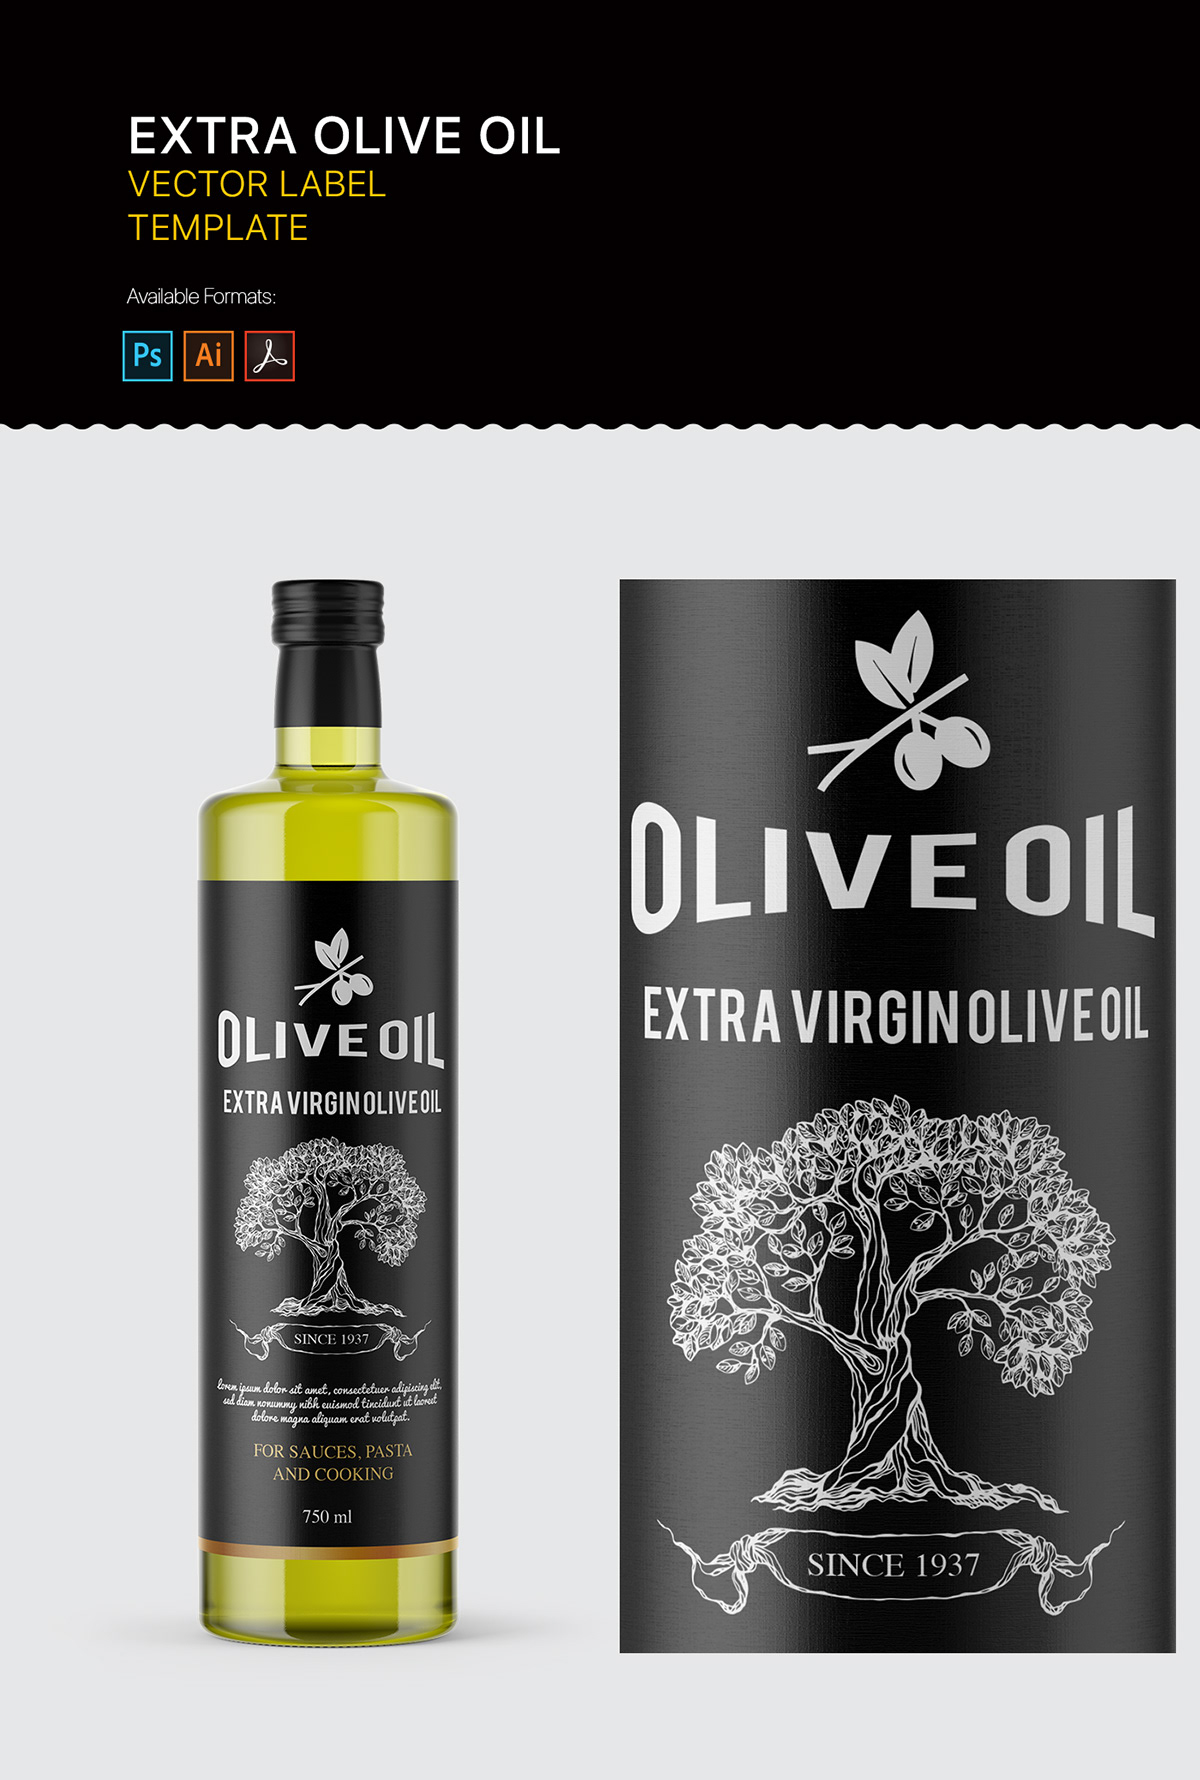 Extra olive oil label template on Pantone Canvas Gallery